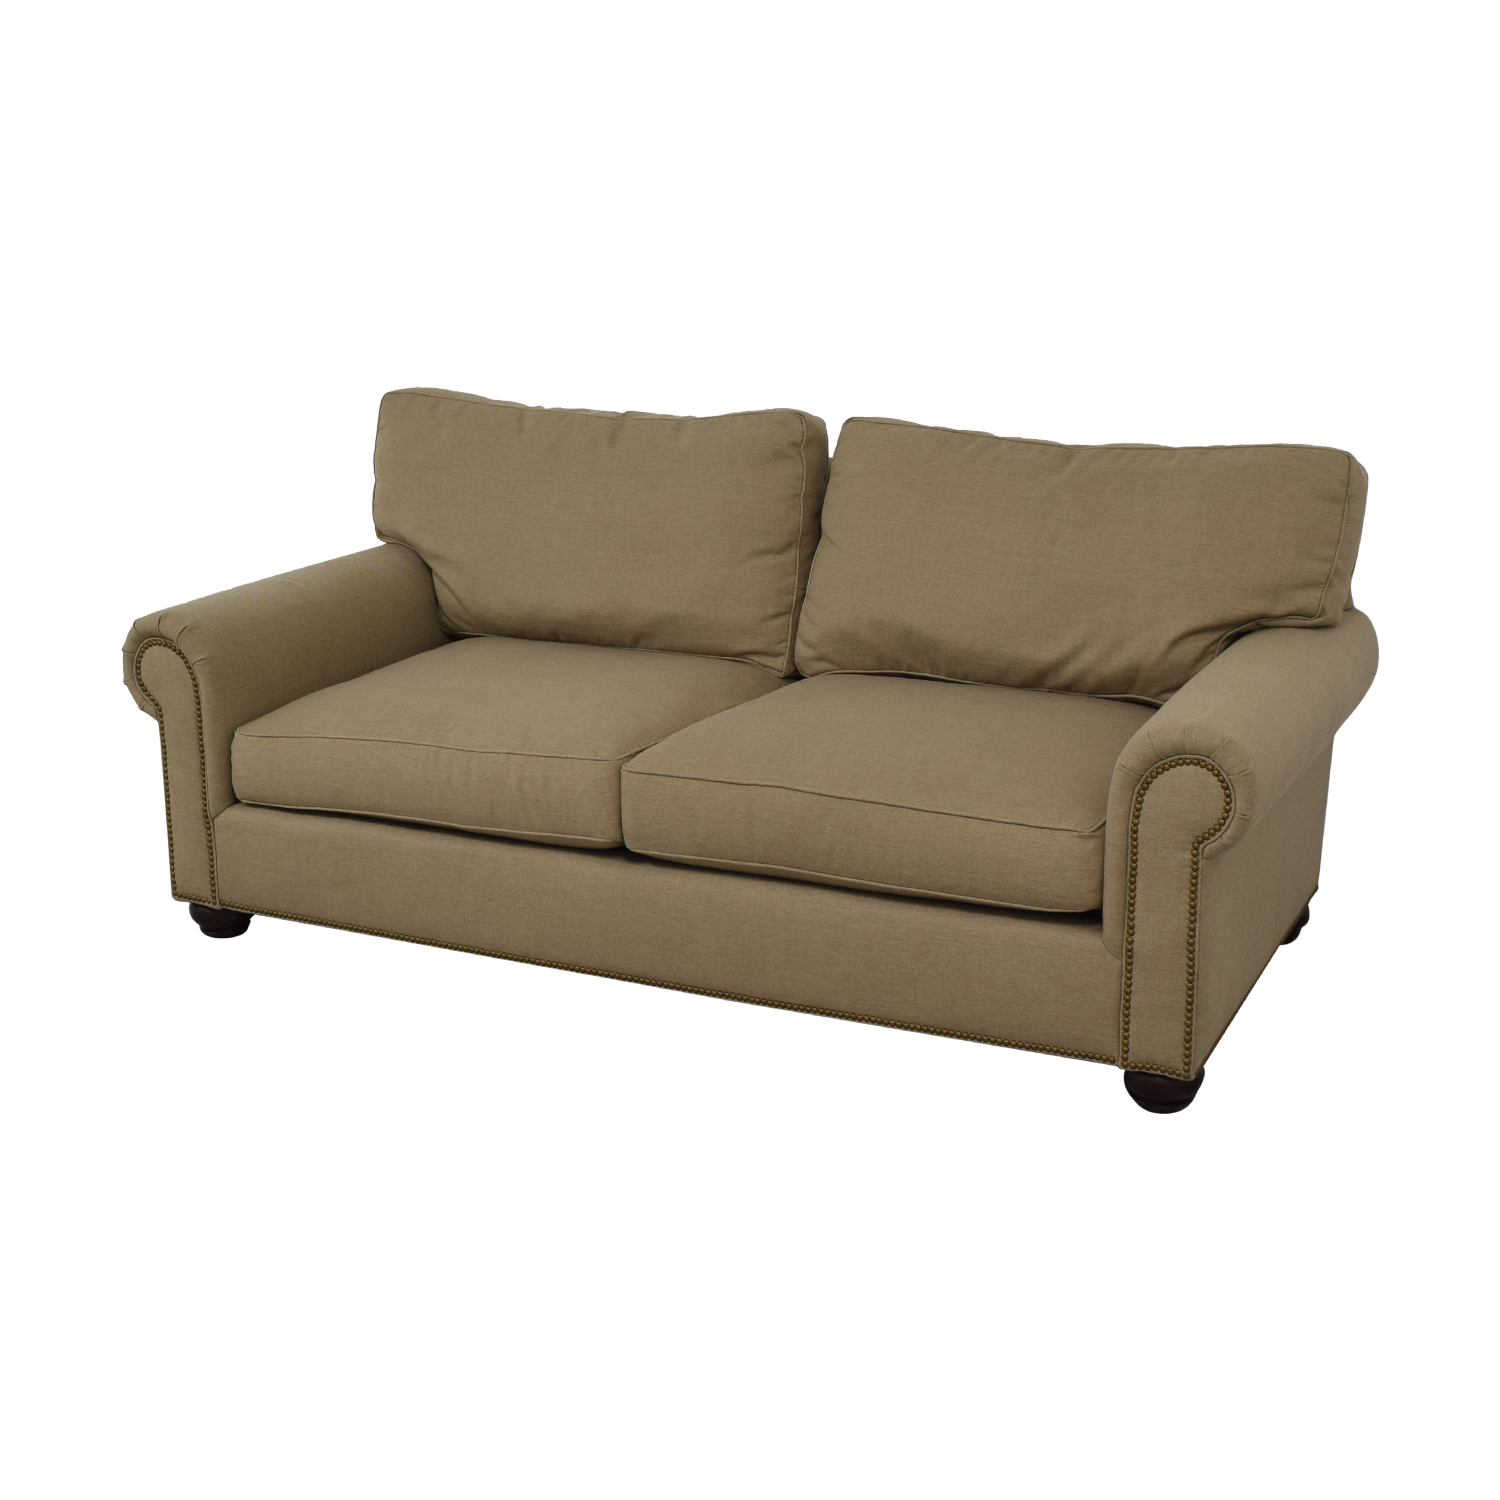 Pottery Barn Webster Beige Two-Cushion Couch Pottery Barn